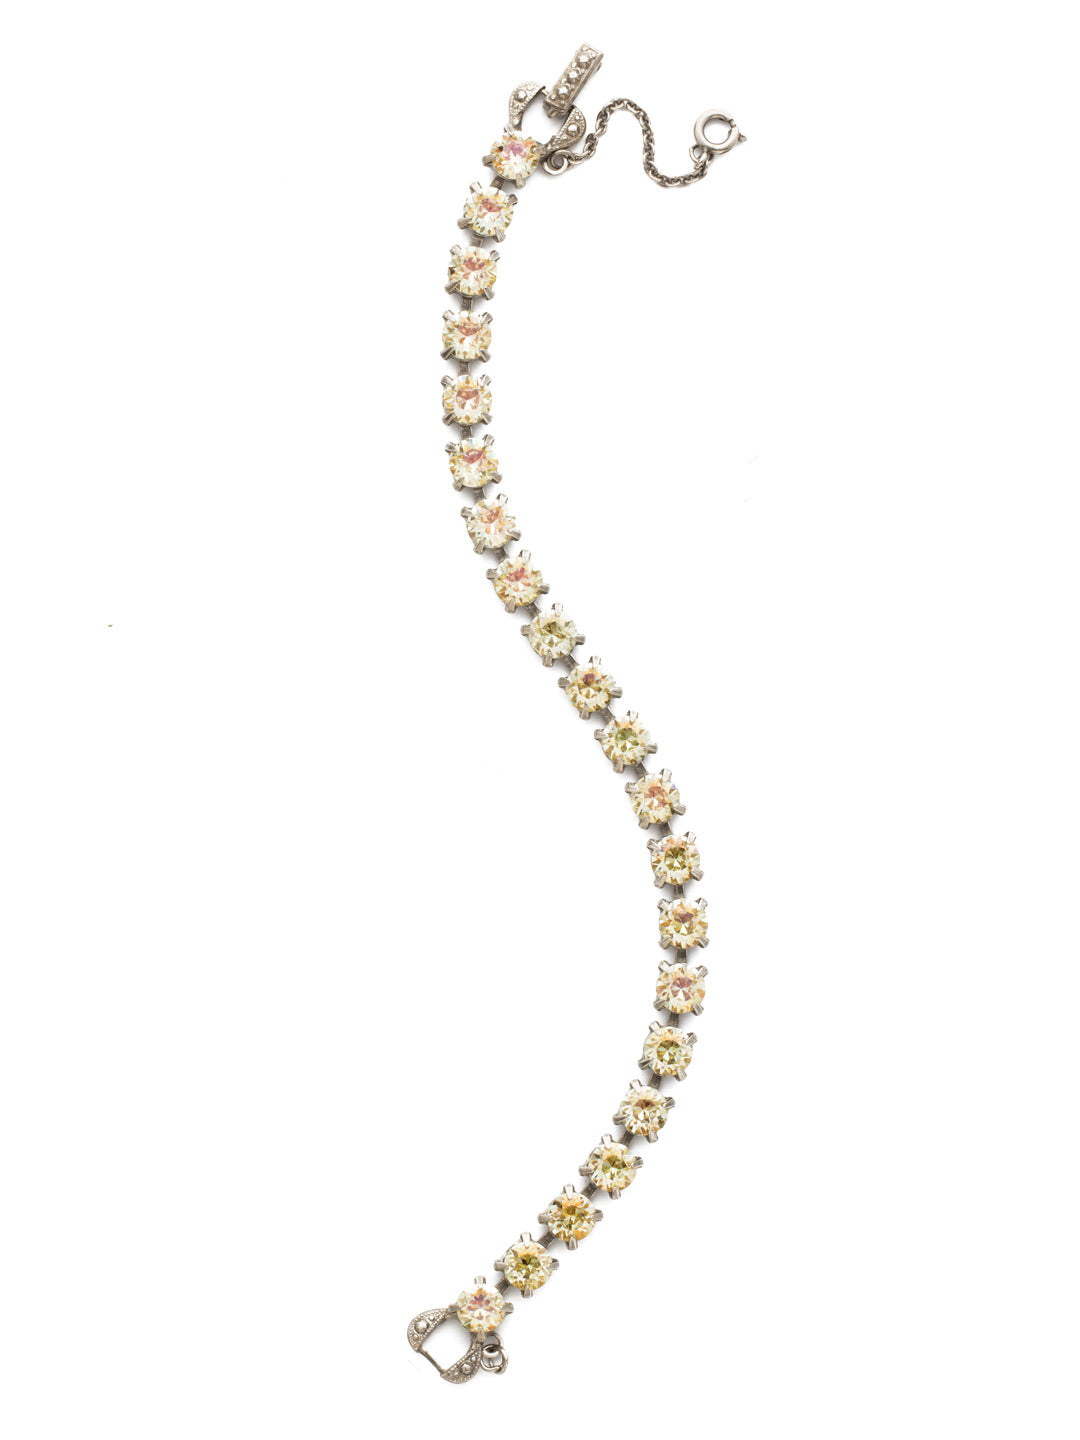 Repeating Round Tennis Bracelet - BCZ36ASCCH